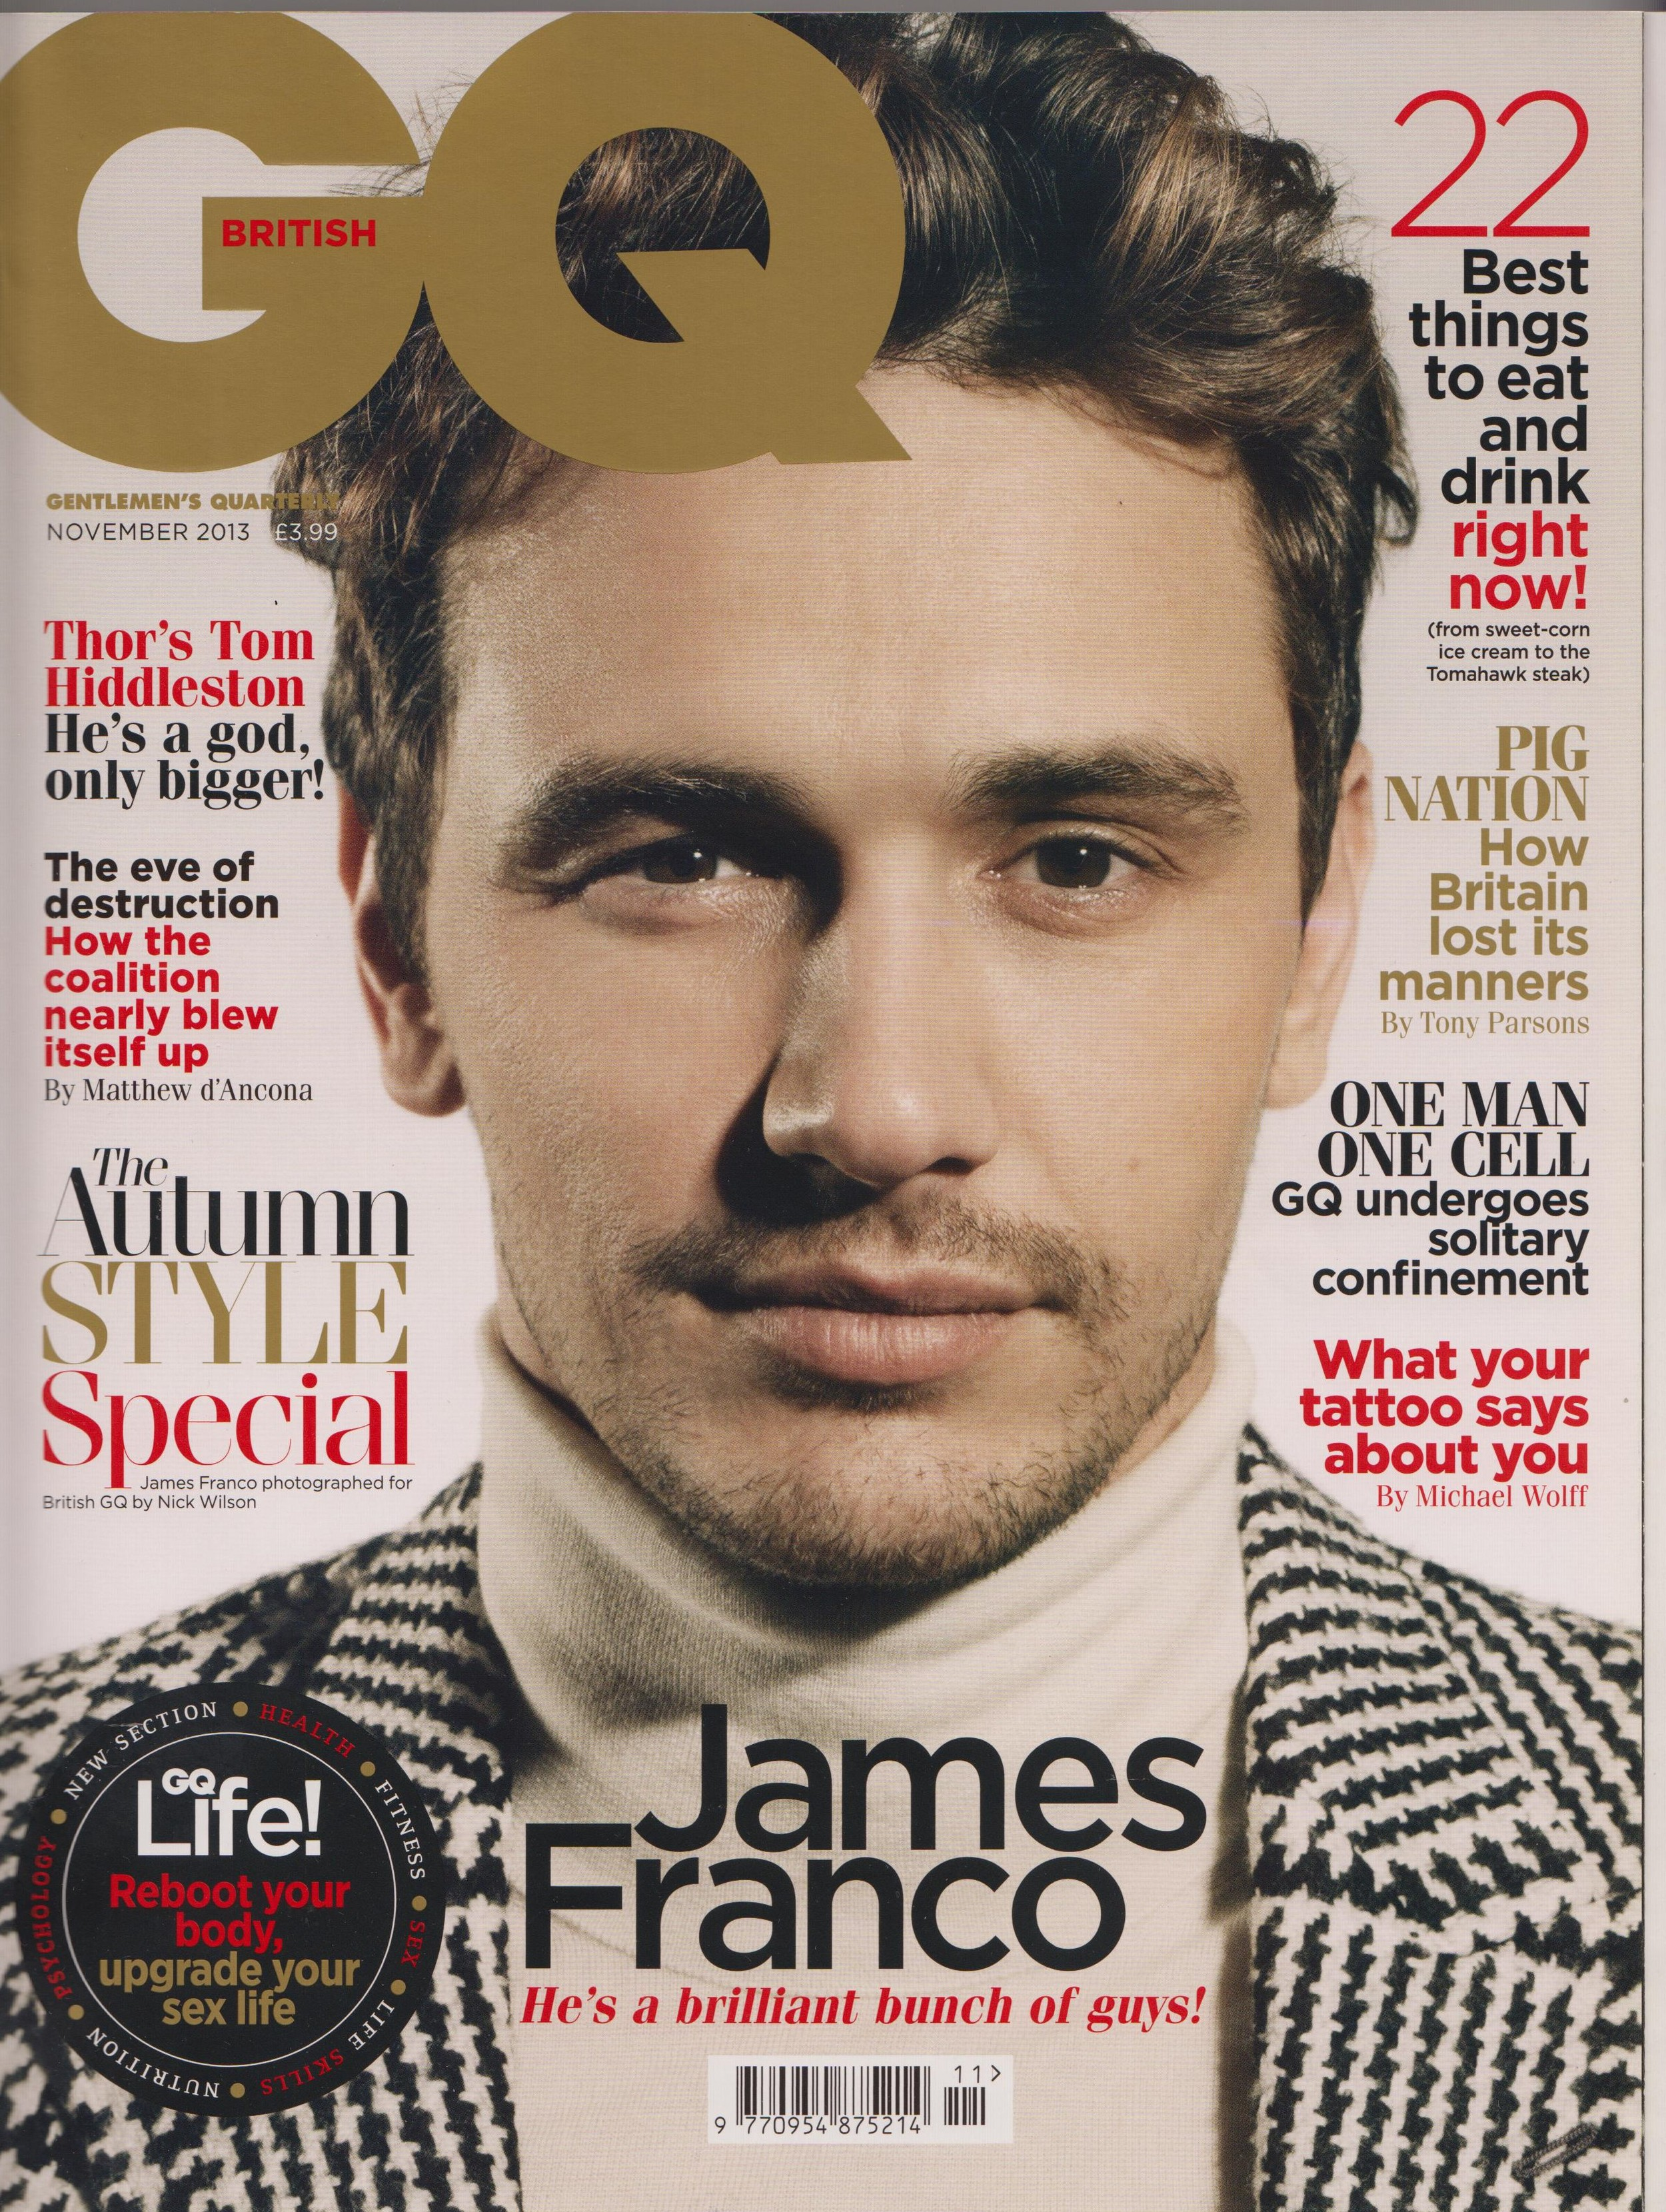 Cover of GQ - Nov 2013